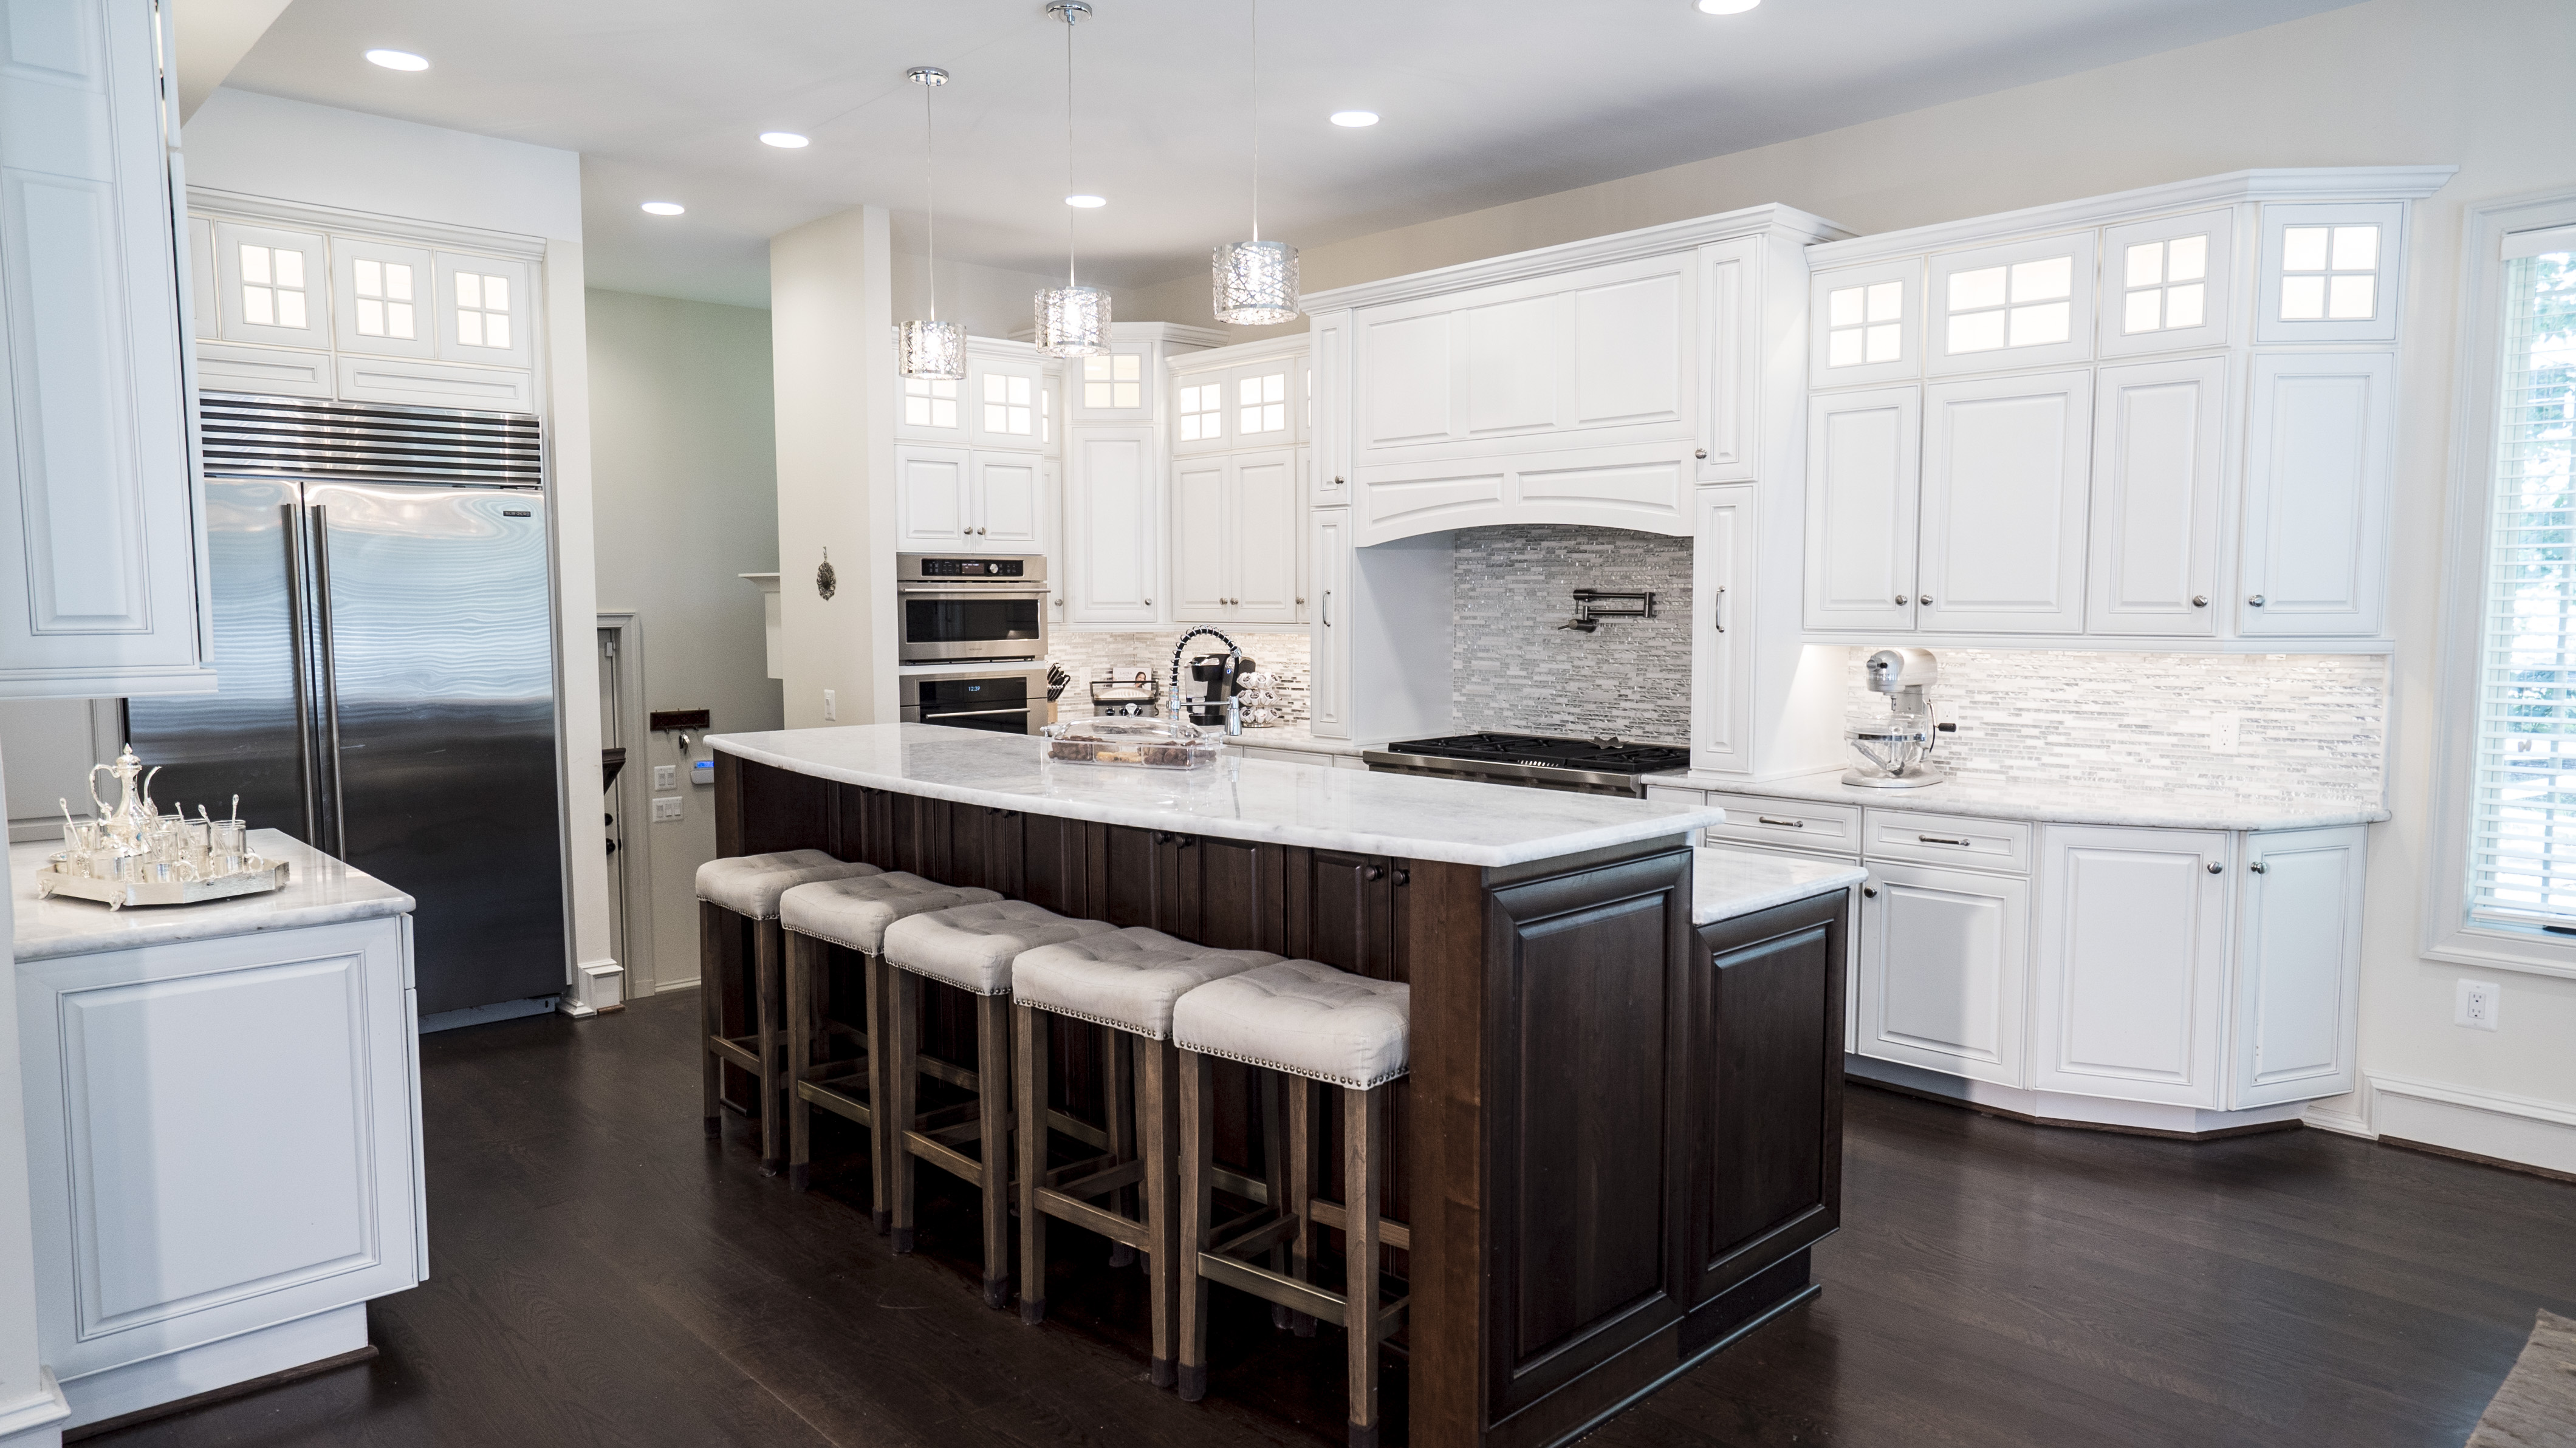 kitchen remodel floor or cabinets first. perfect kitchen remodel